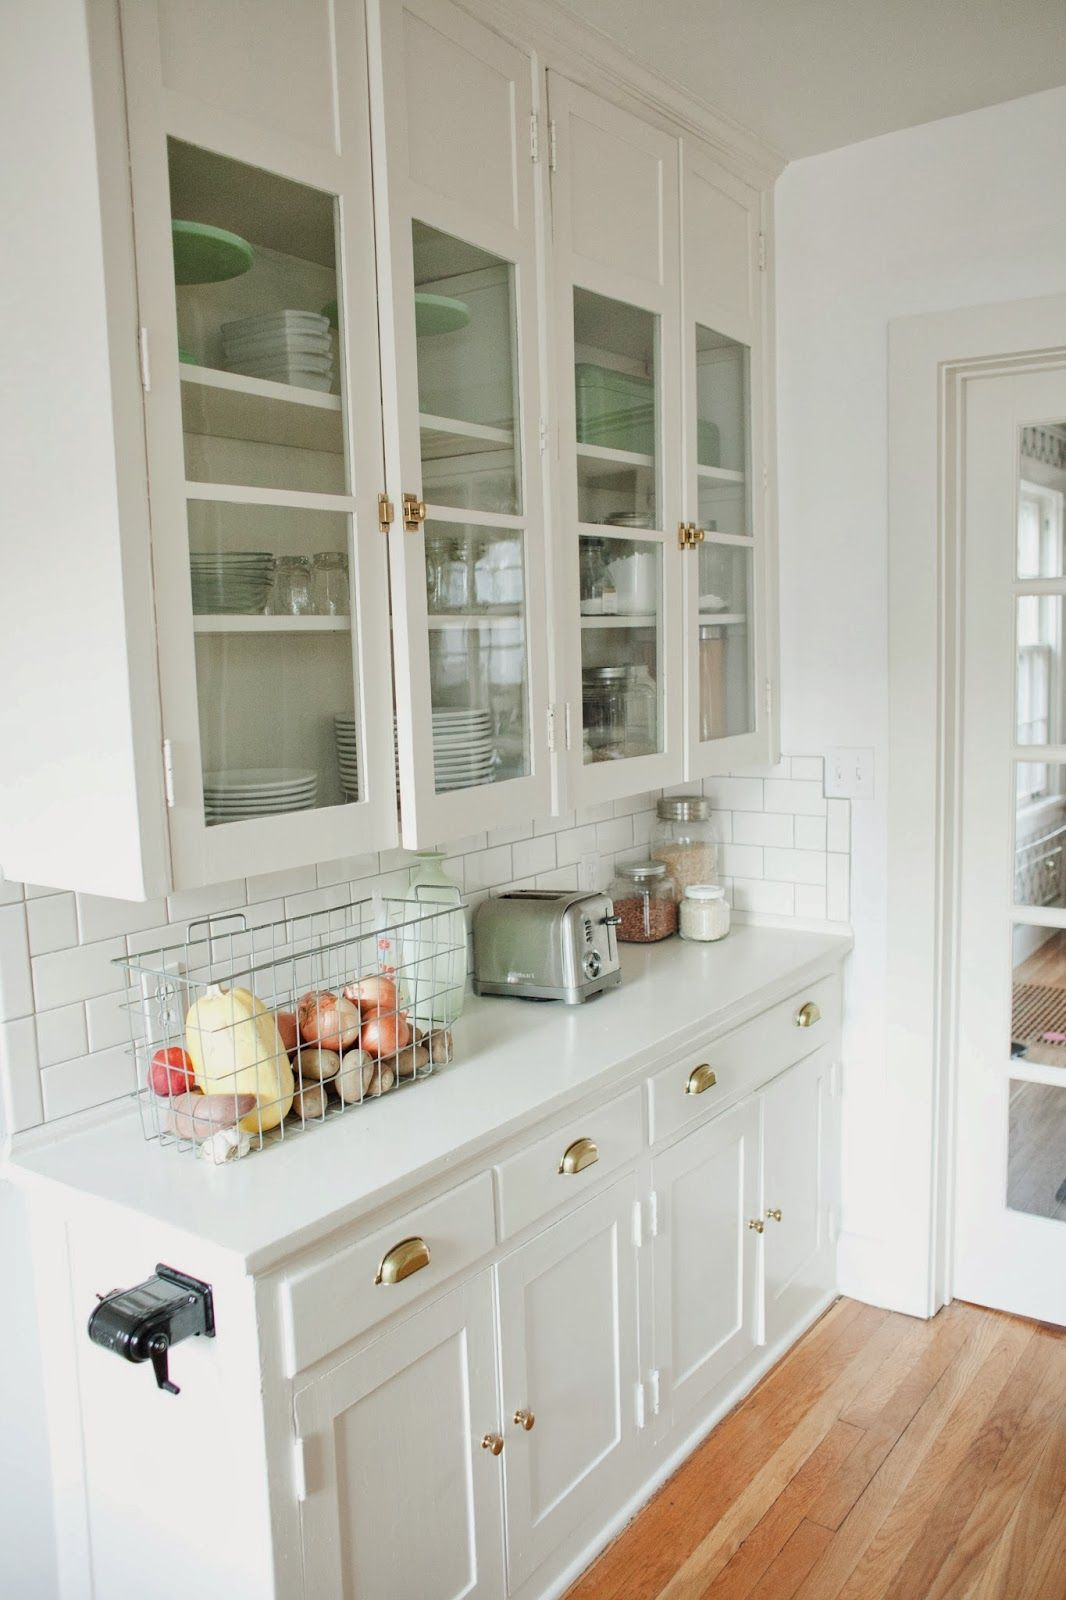 Original 1920s Built Ins Want To Recreate These With Ikea Cabinets And I Want The Pencil Sharpener Vintage Kitchen Cabinets Kitchen Layout Kitchen Renovation